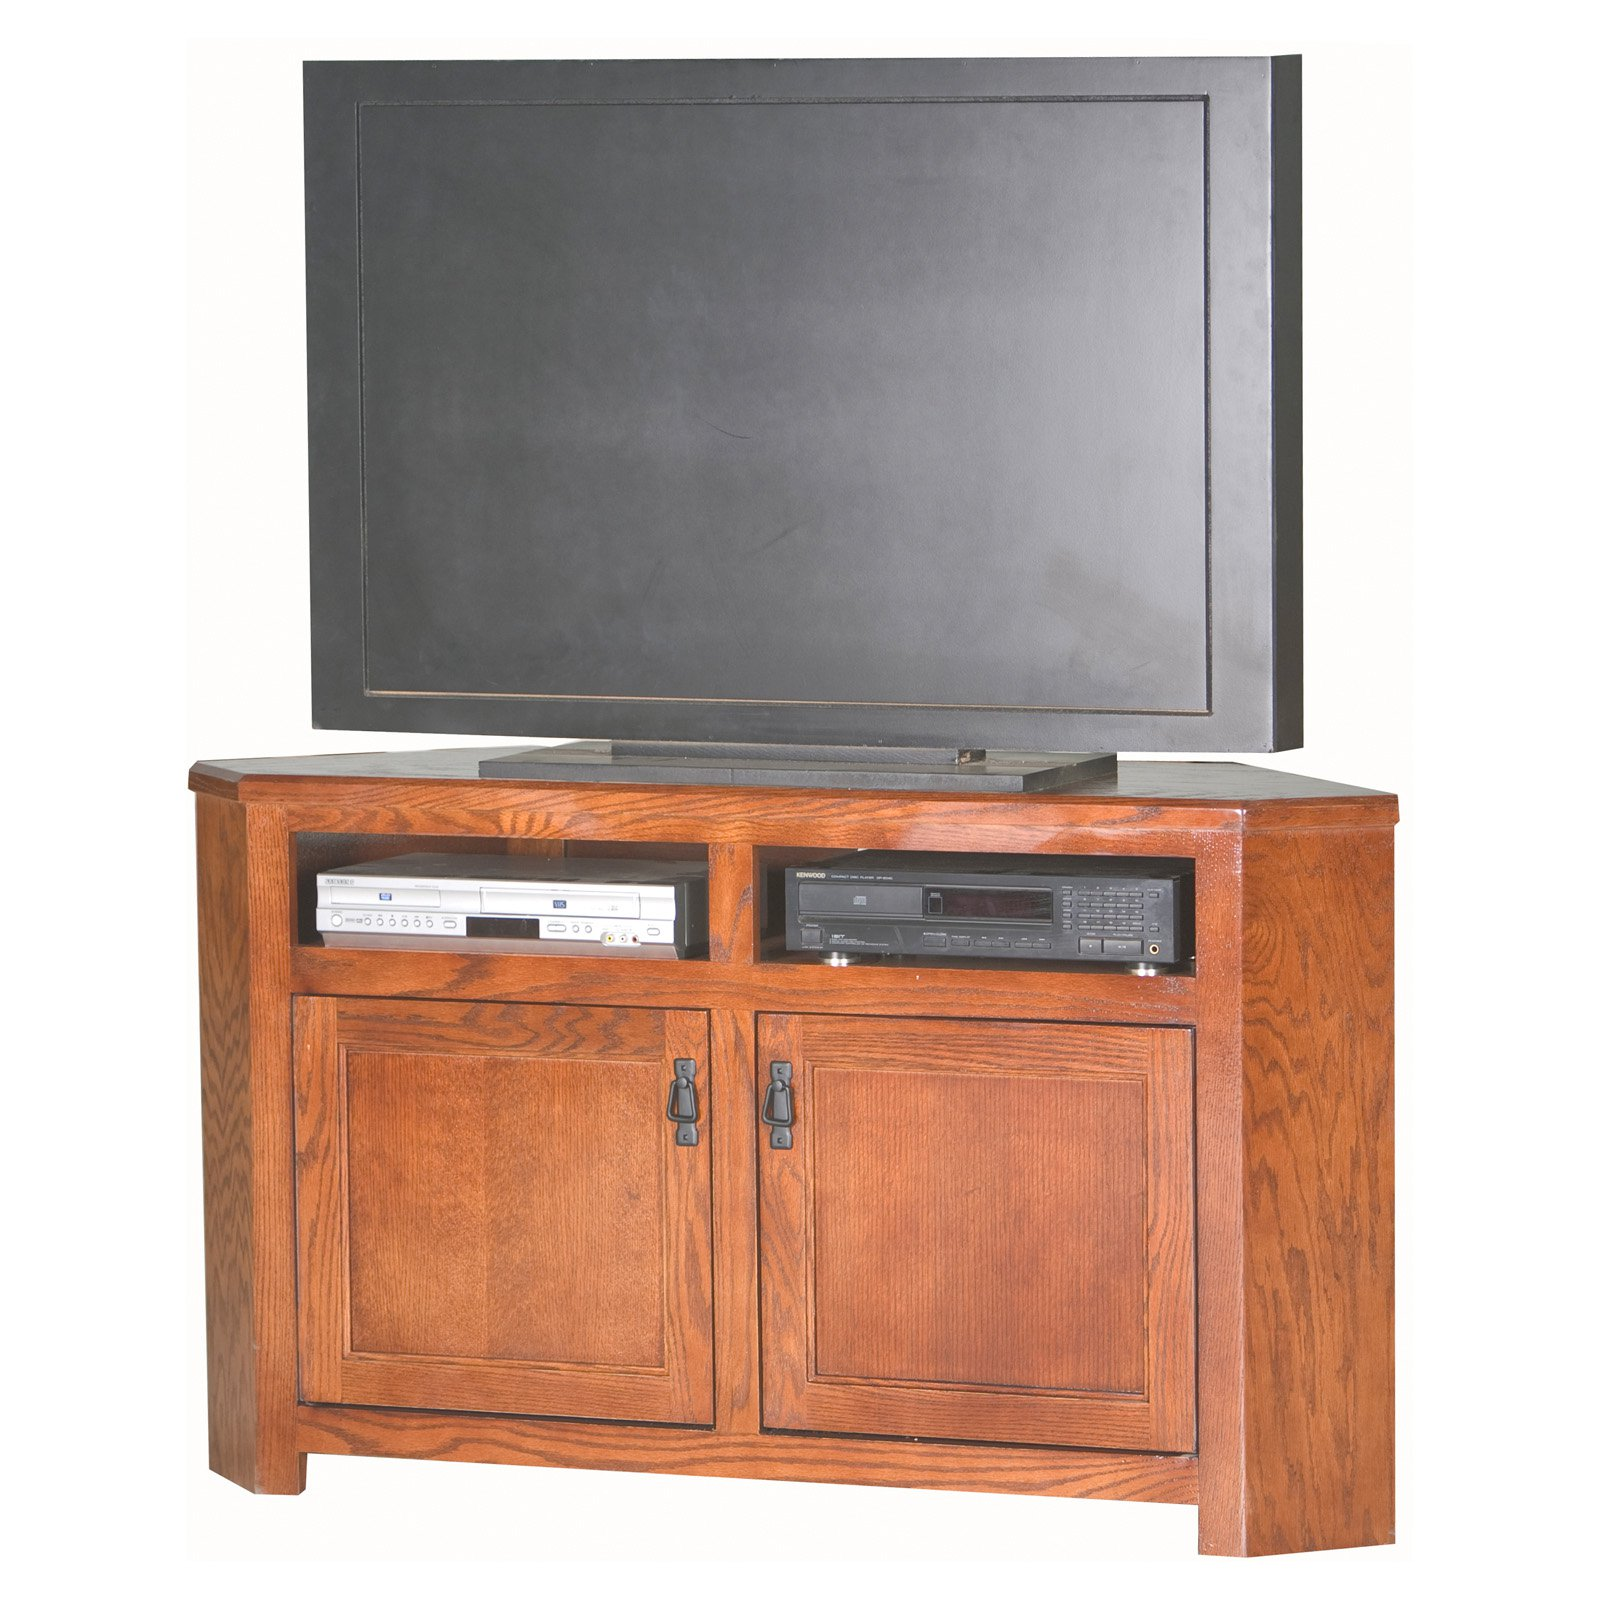 Eagle Furniture Mission 56 in. Corner Entertainment Center